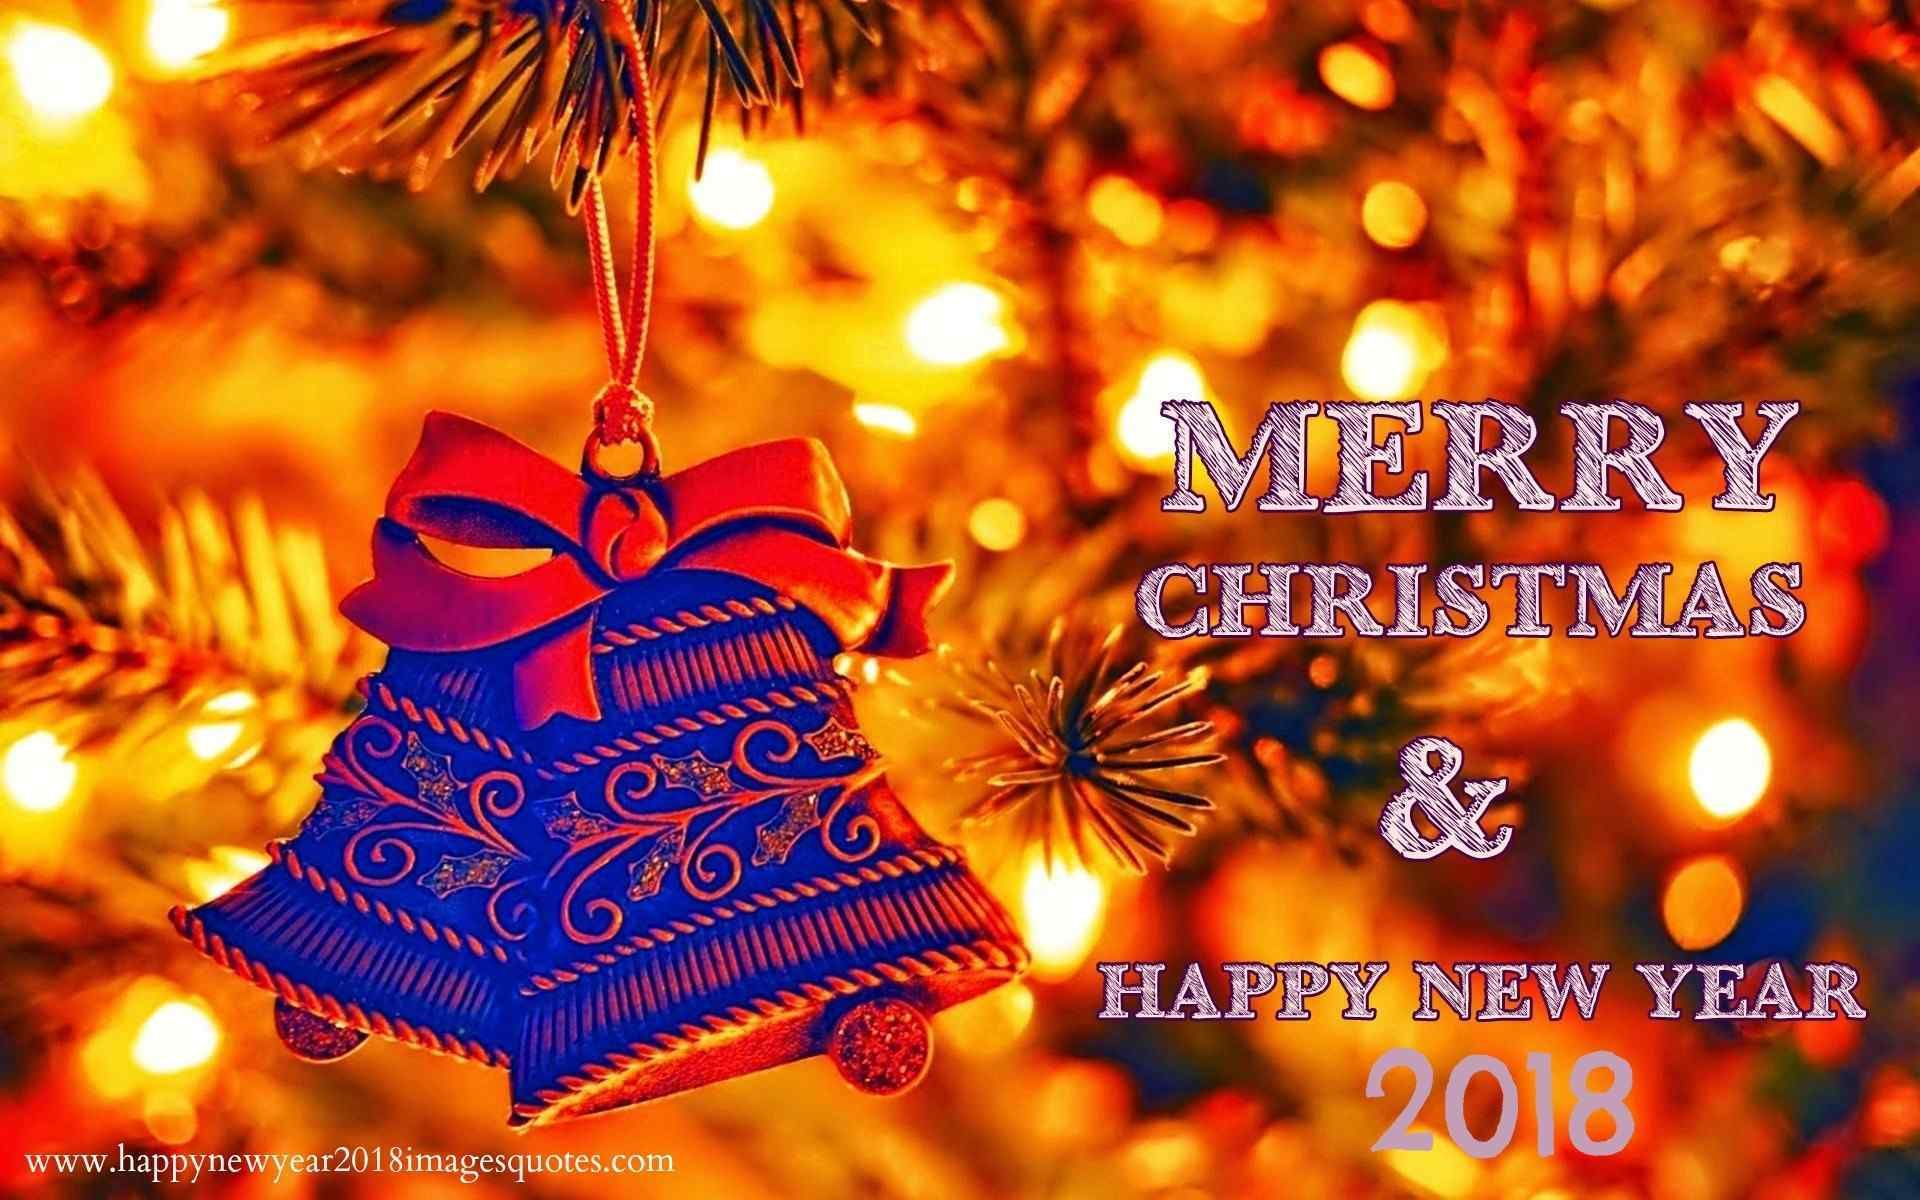 Beautiful Merry Christmas And Happy New Year Wallpaper Hd Prekhome Happy New Year Gif Happy New Year Wallpaper New Year Wallpaper Hd